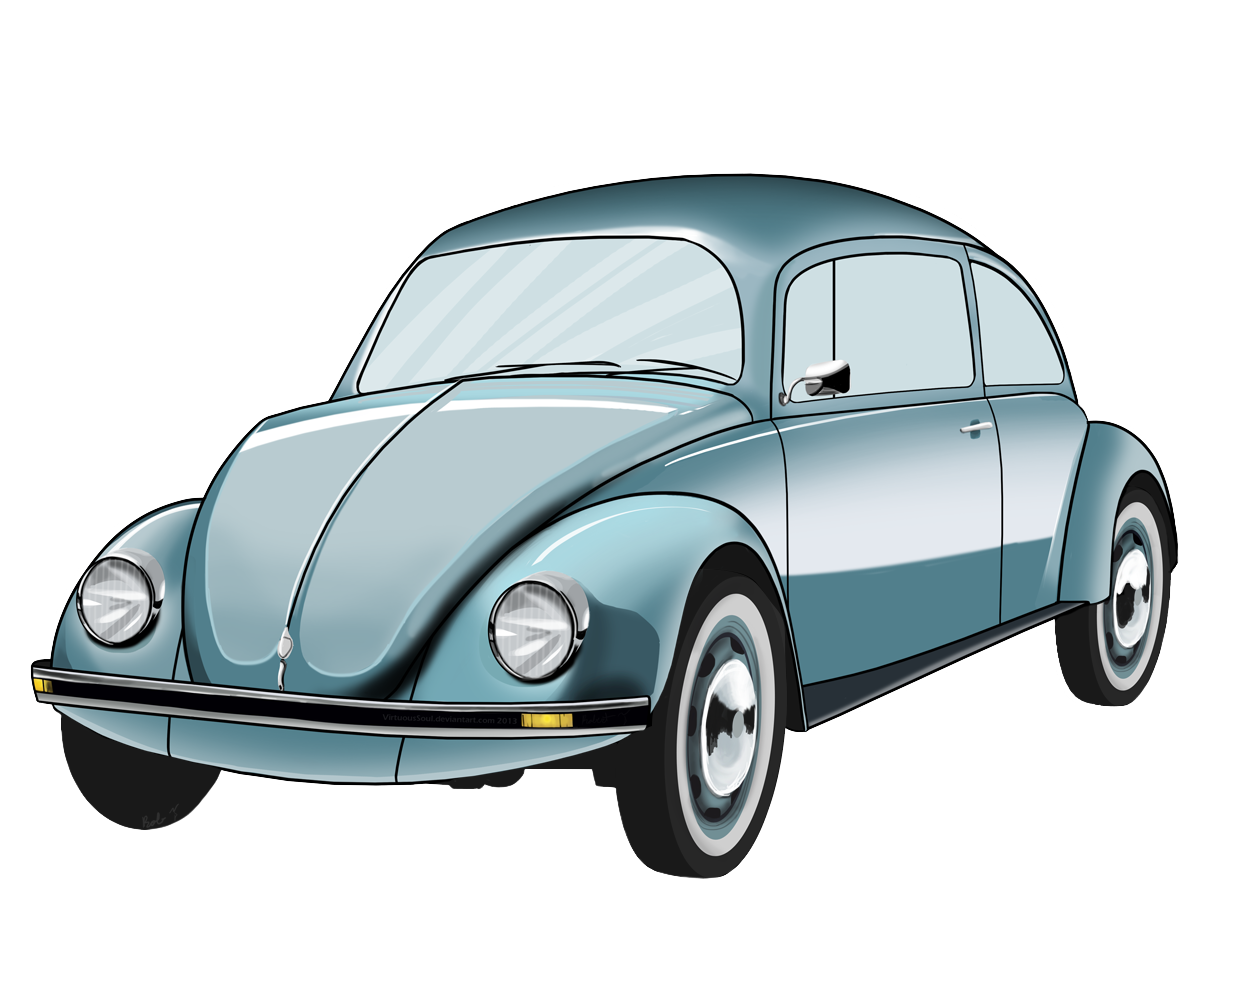 Vw beetle clipart image free download Vw Bug Clipart   craft ideas   Places, Volkswagen, Cars ... image free download